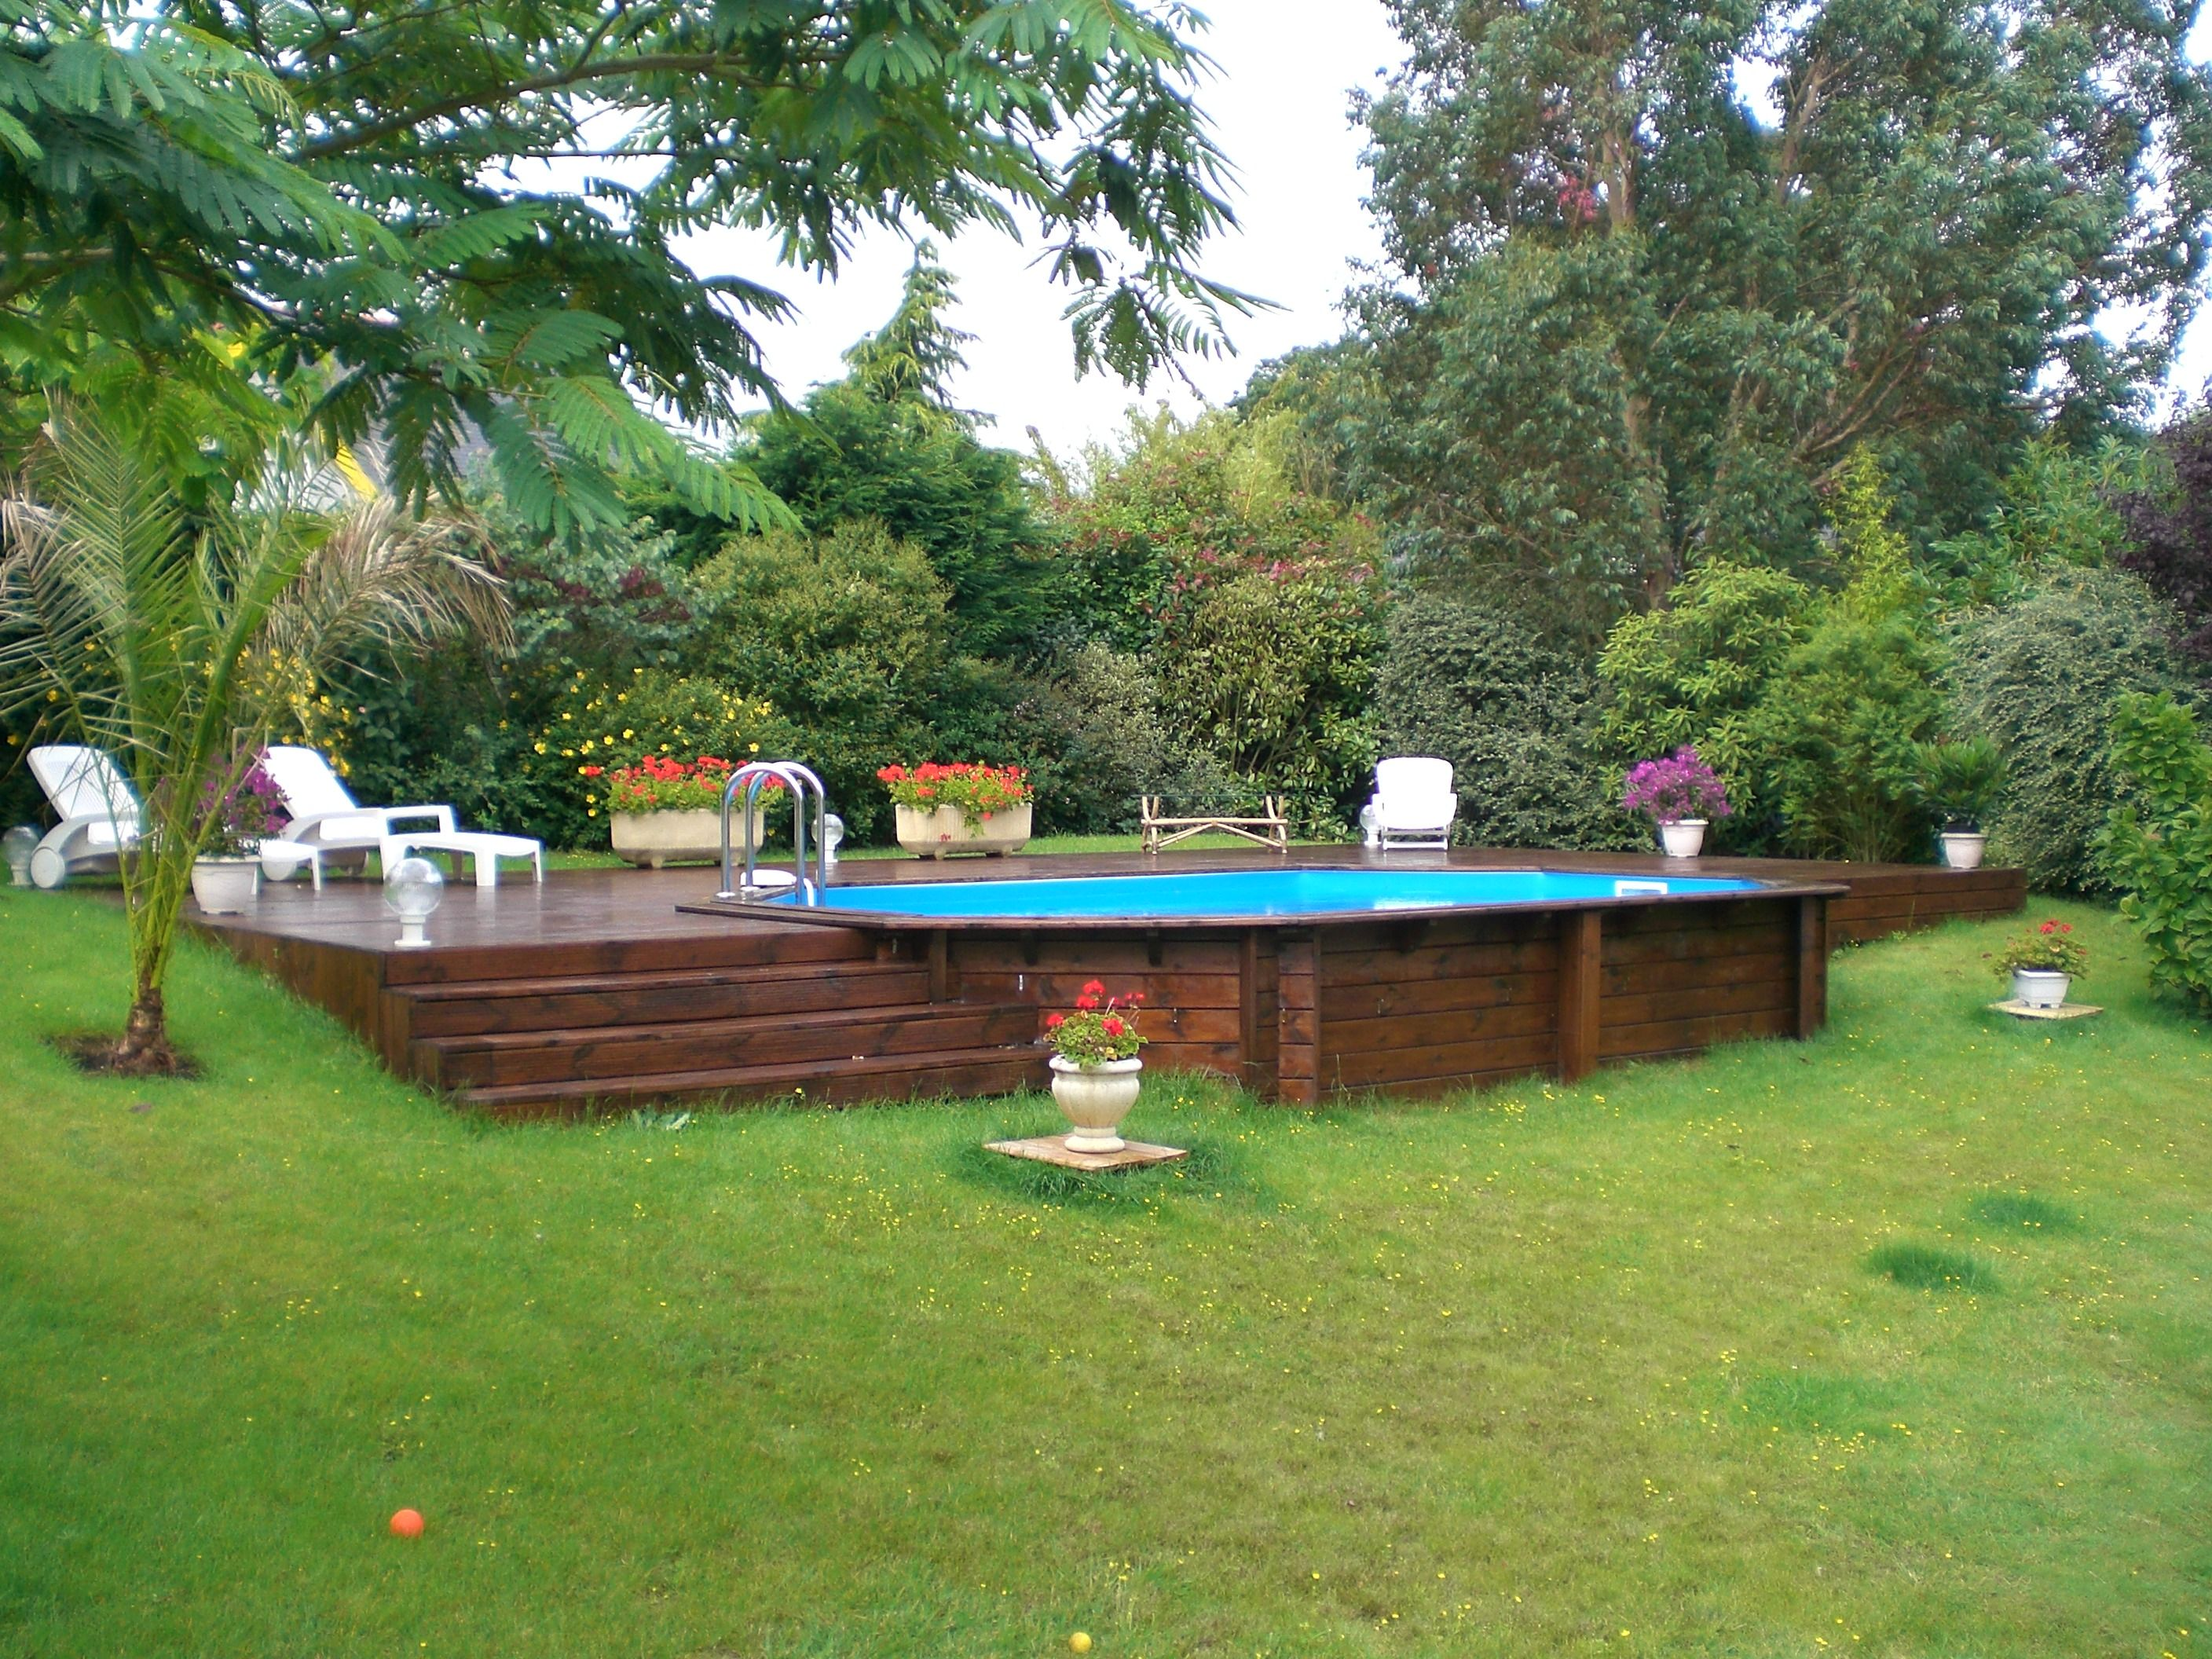 Piscine hors sol en bois semi enterr e sur terrain en for Piscine rectangulaire bois semi enterree